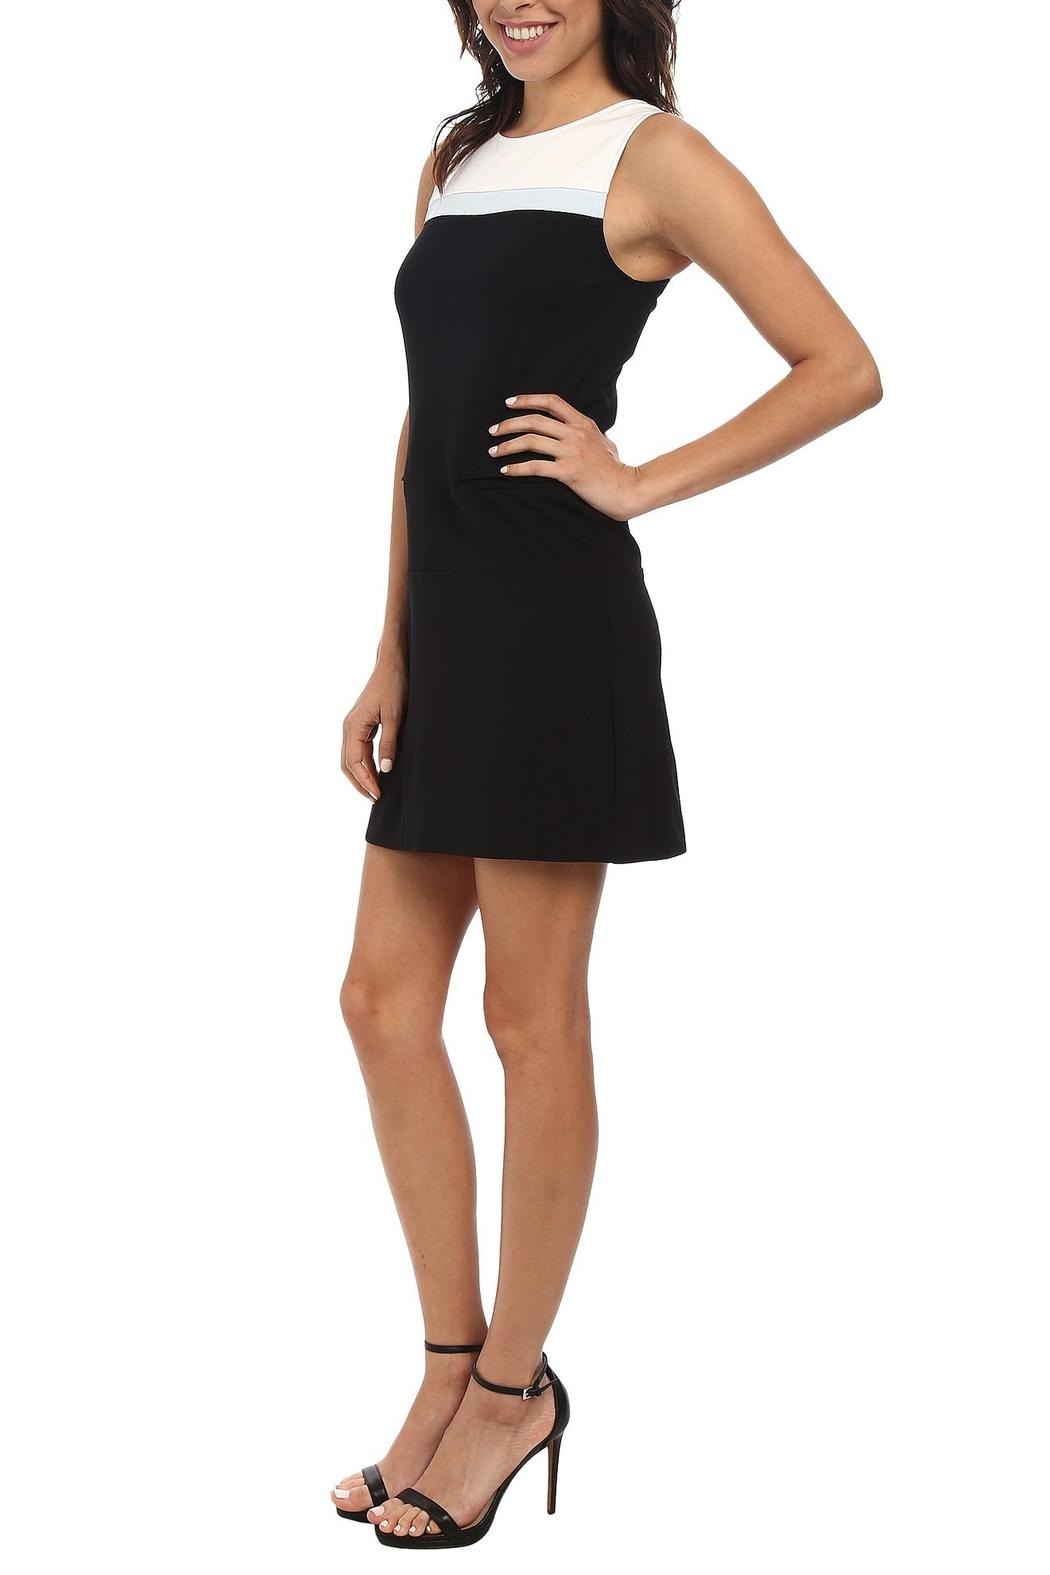 Sanctuary Mod Molly Dress from Wicker Park by Mulberry ...